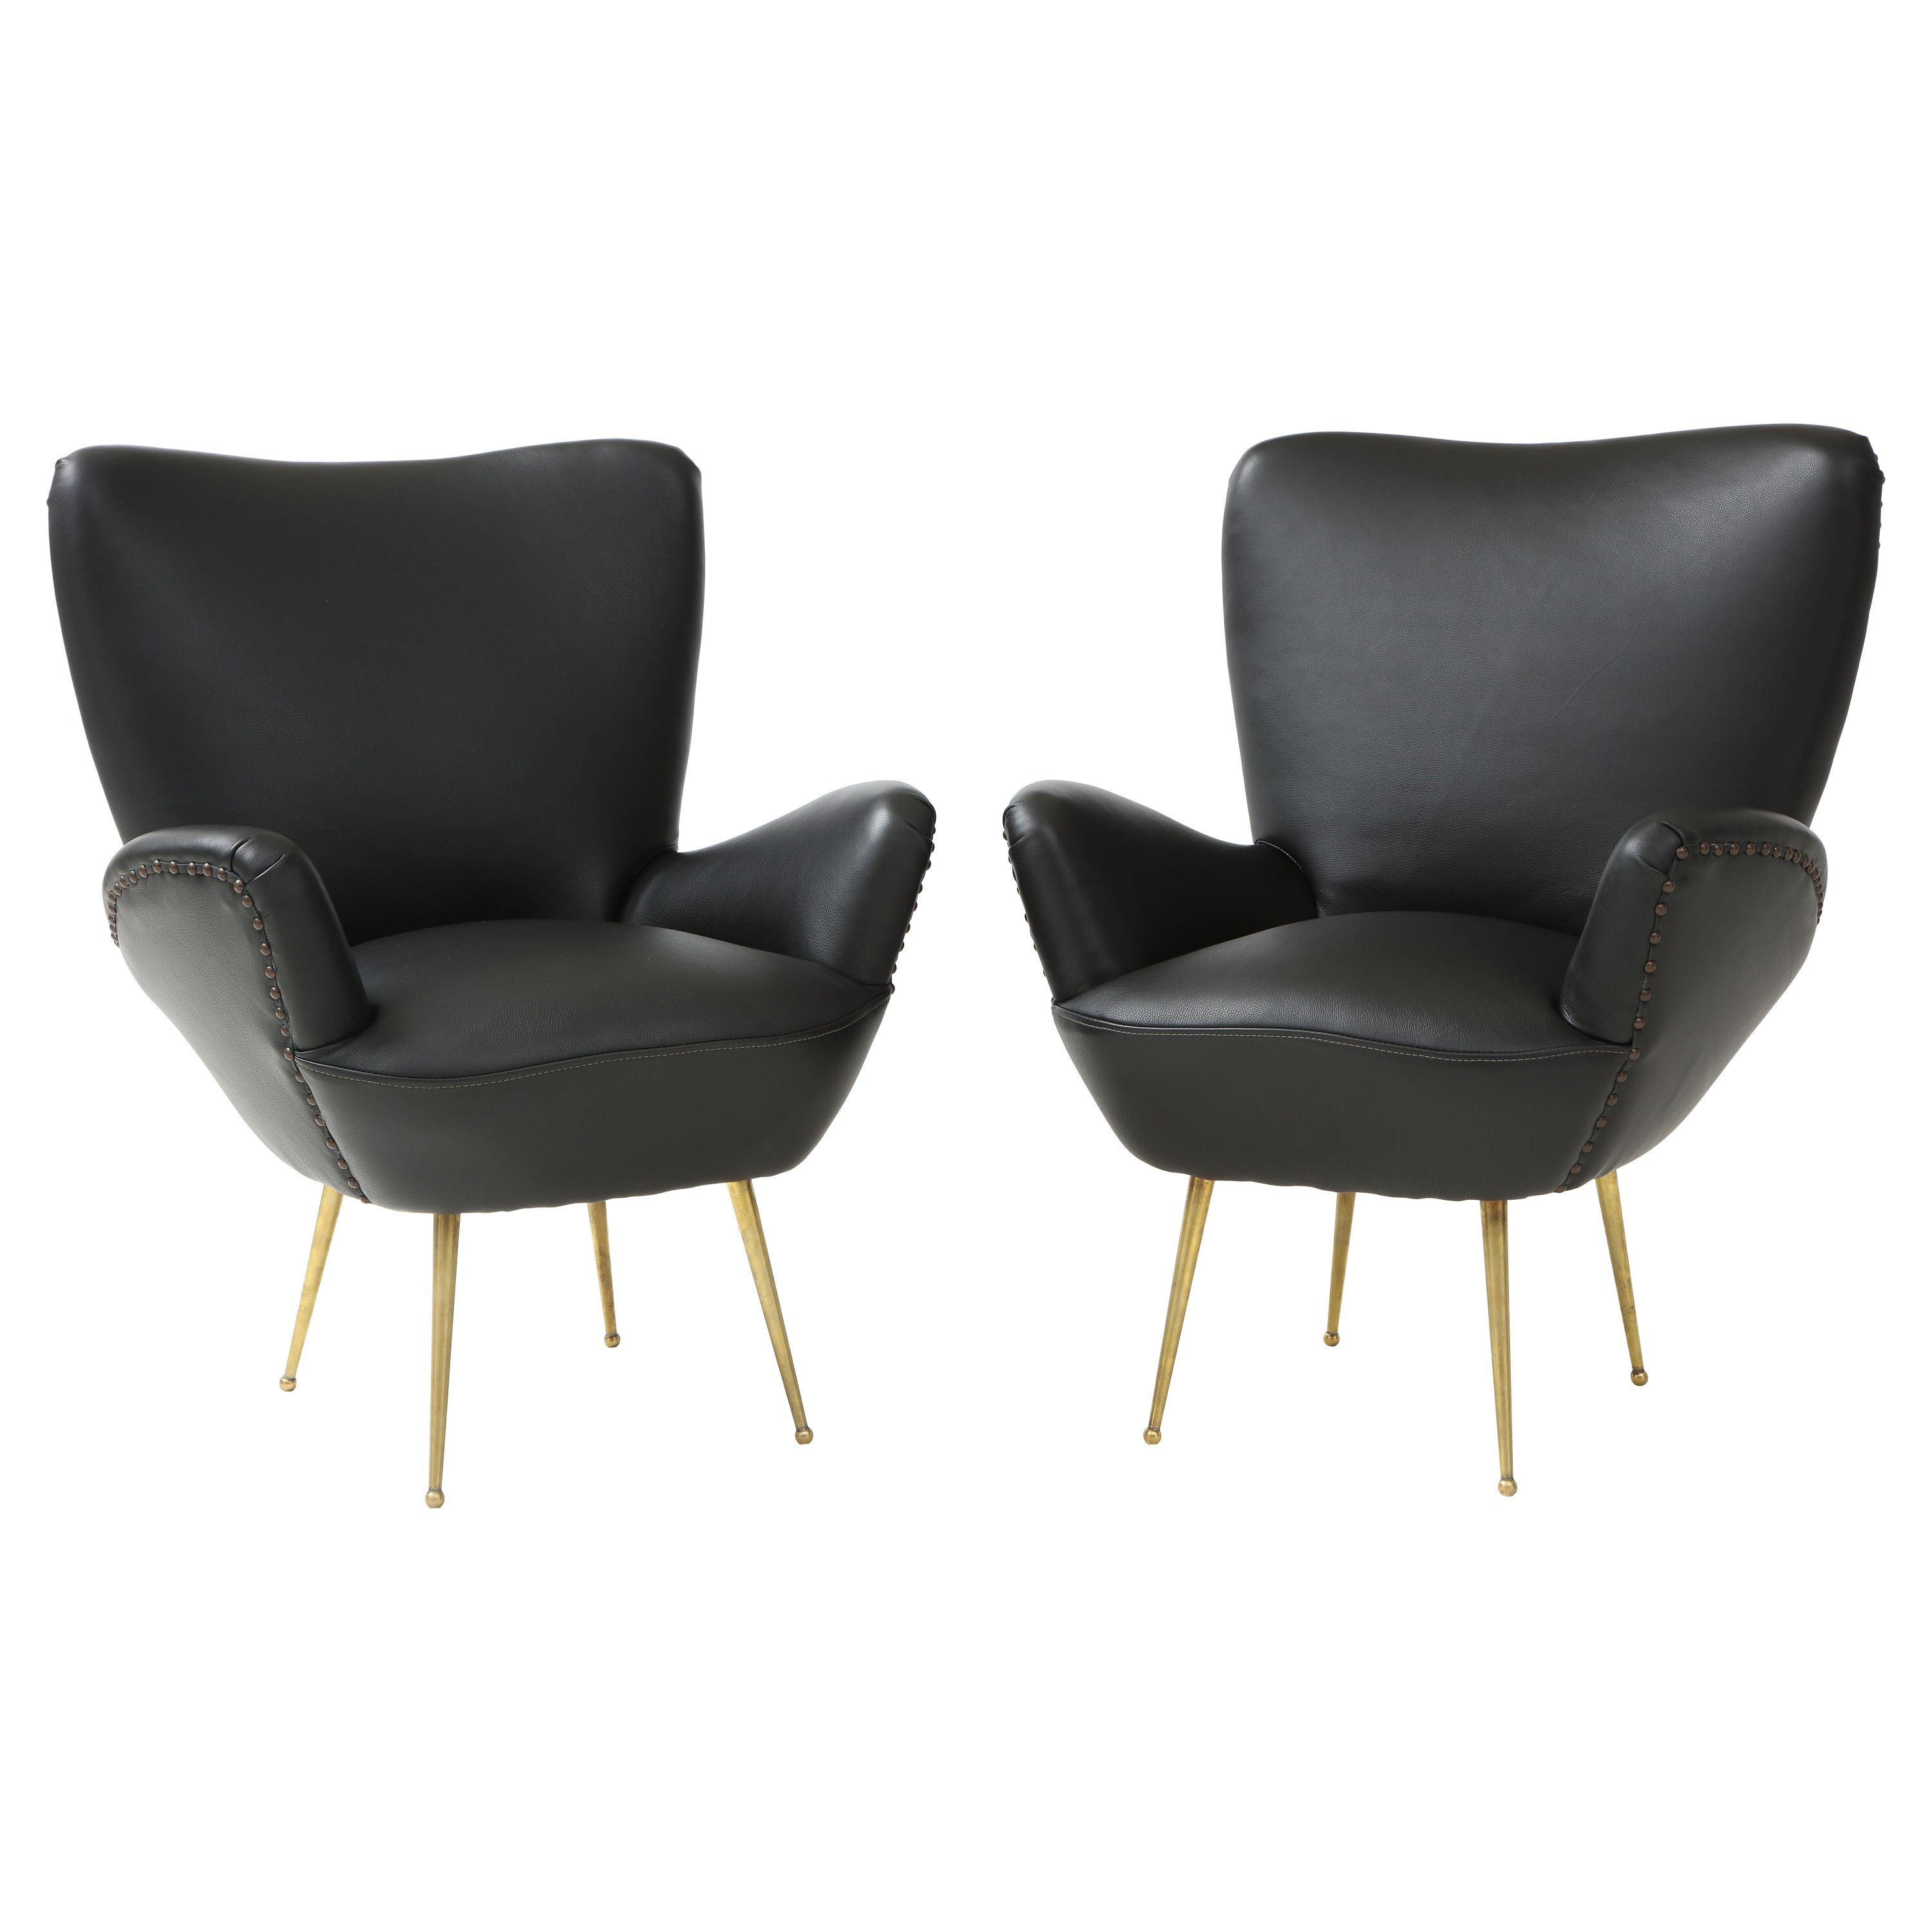 Antonino Gorgone Modernist Brass and Leather Lounge Chairs